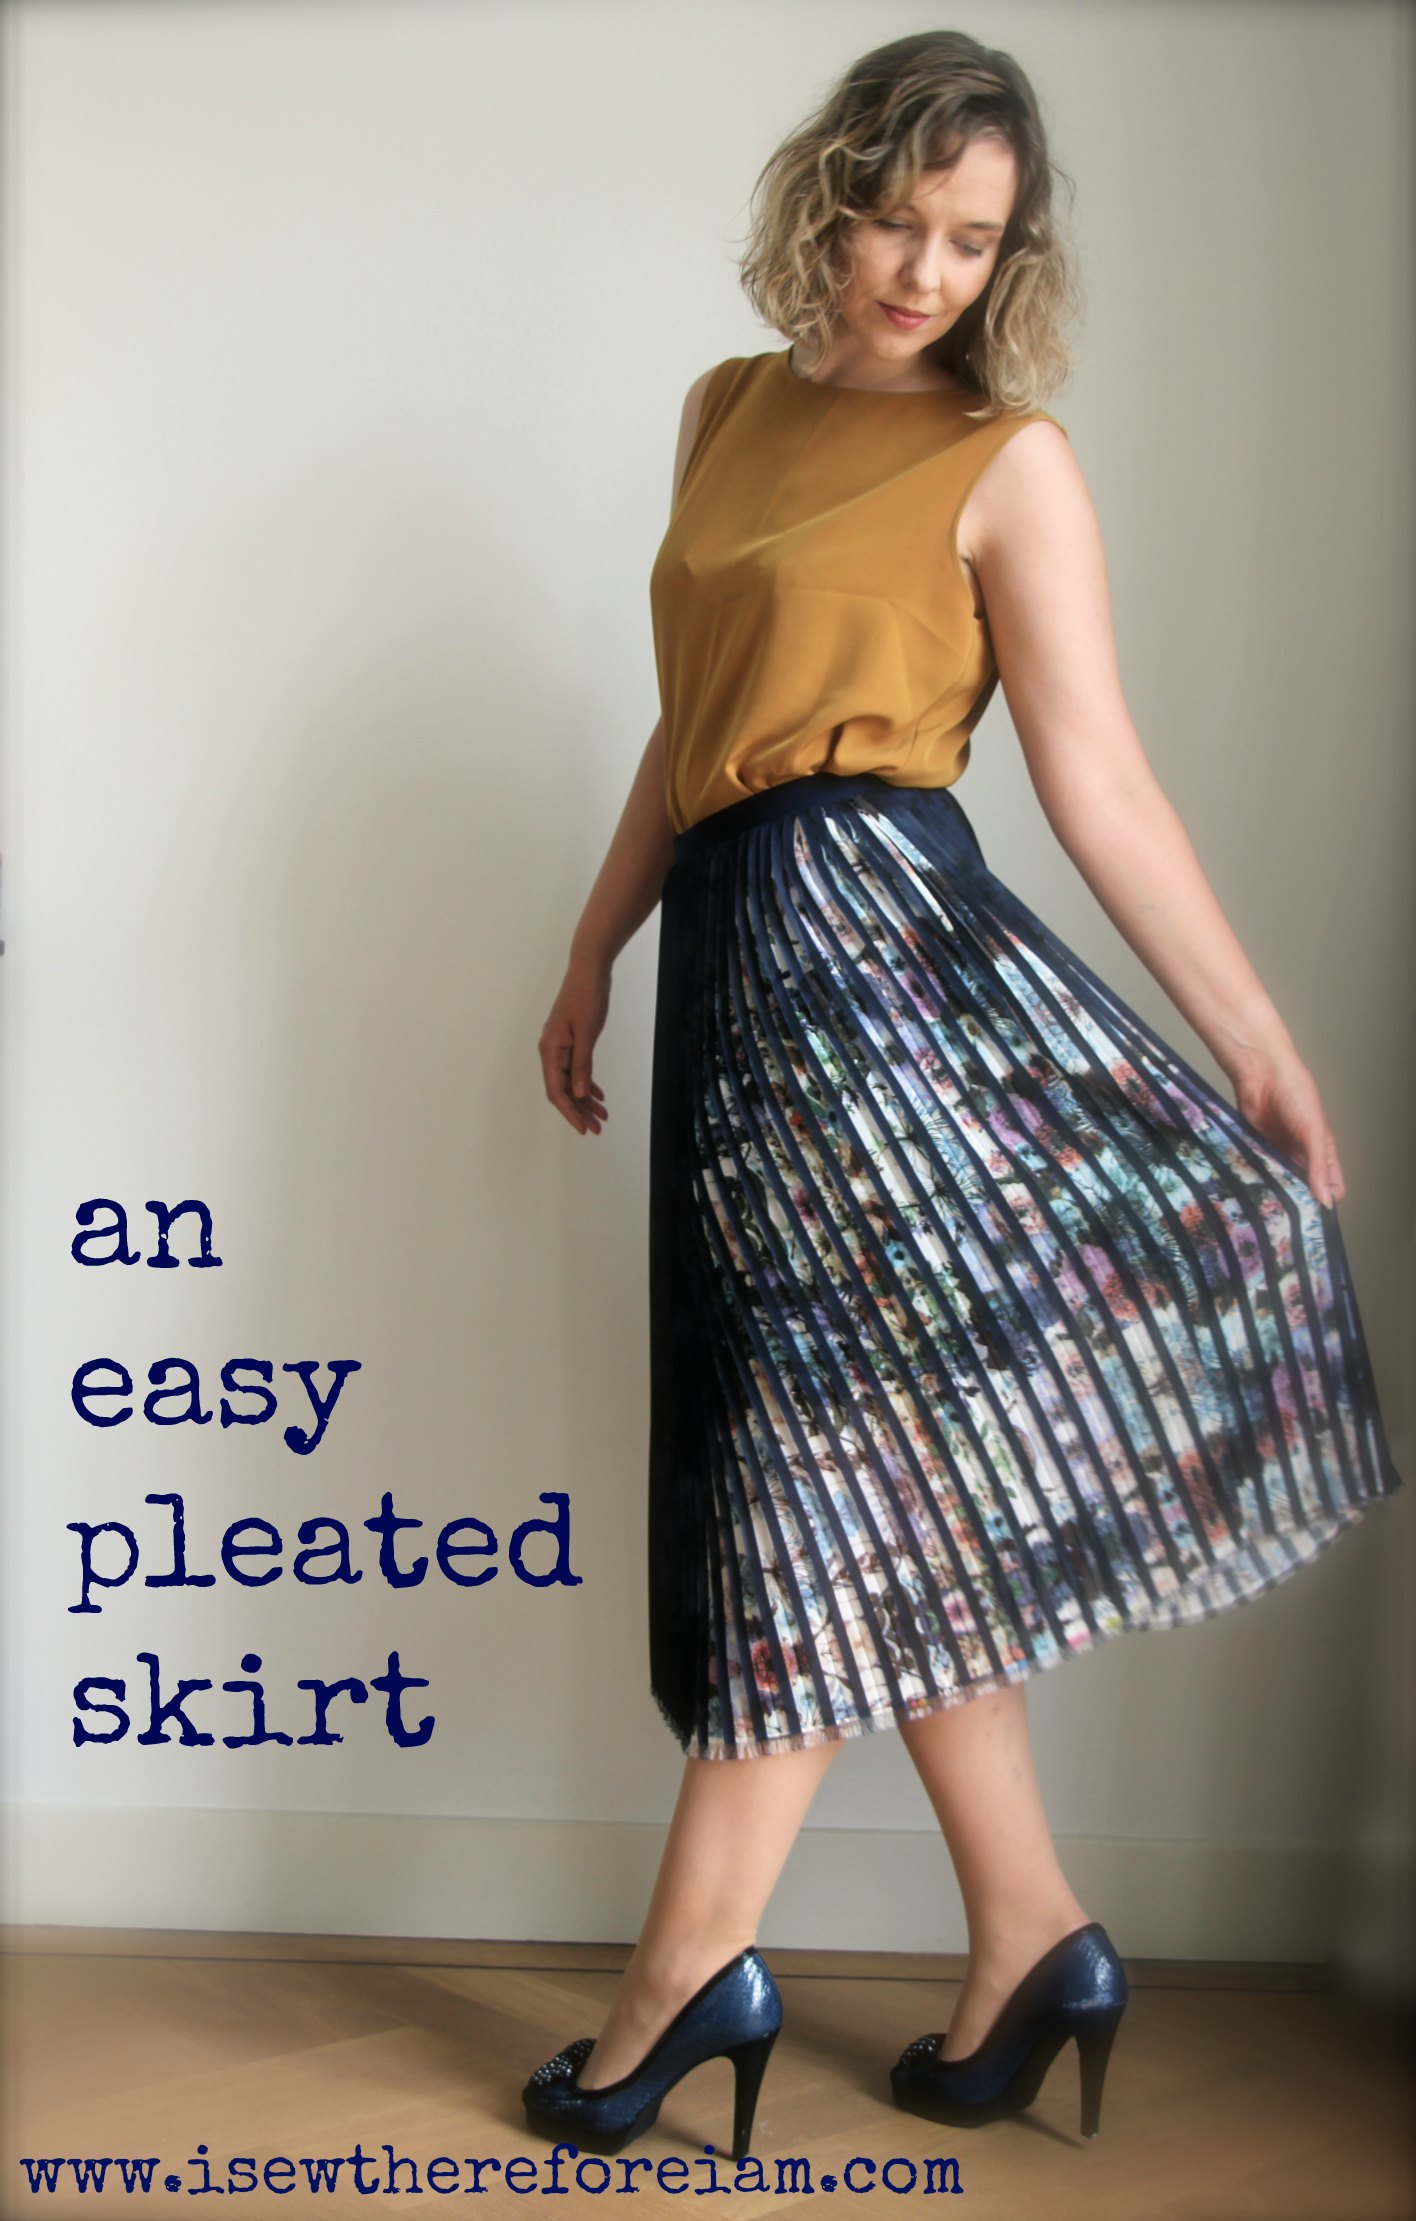 An easy pleated skirt with elastic waist band made out of pre-pleated fabric